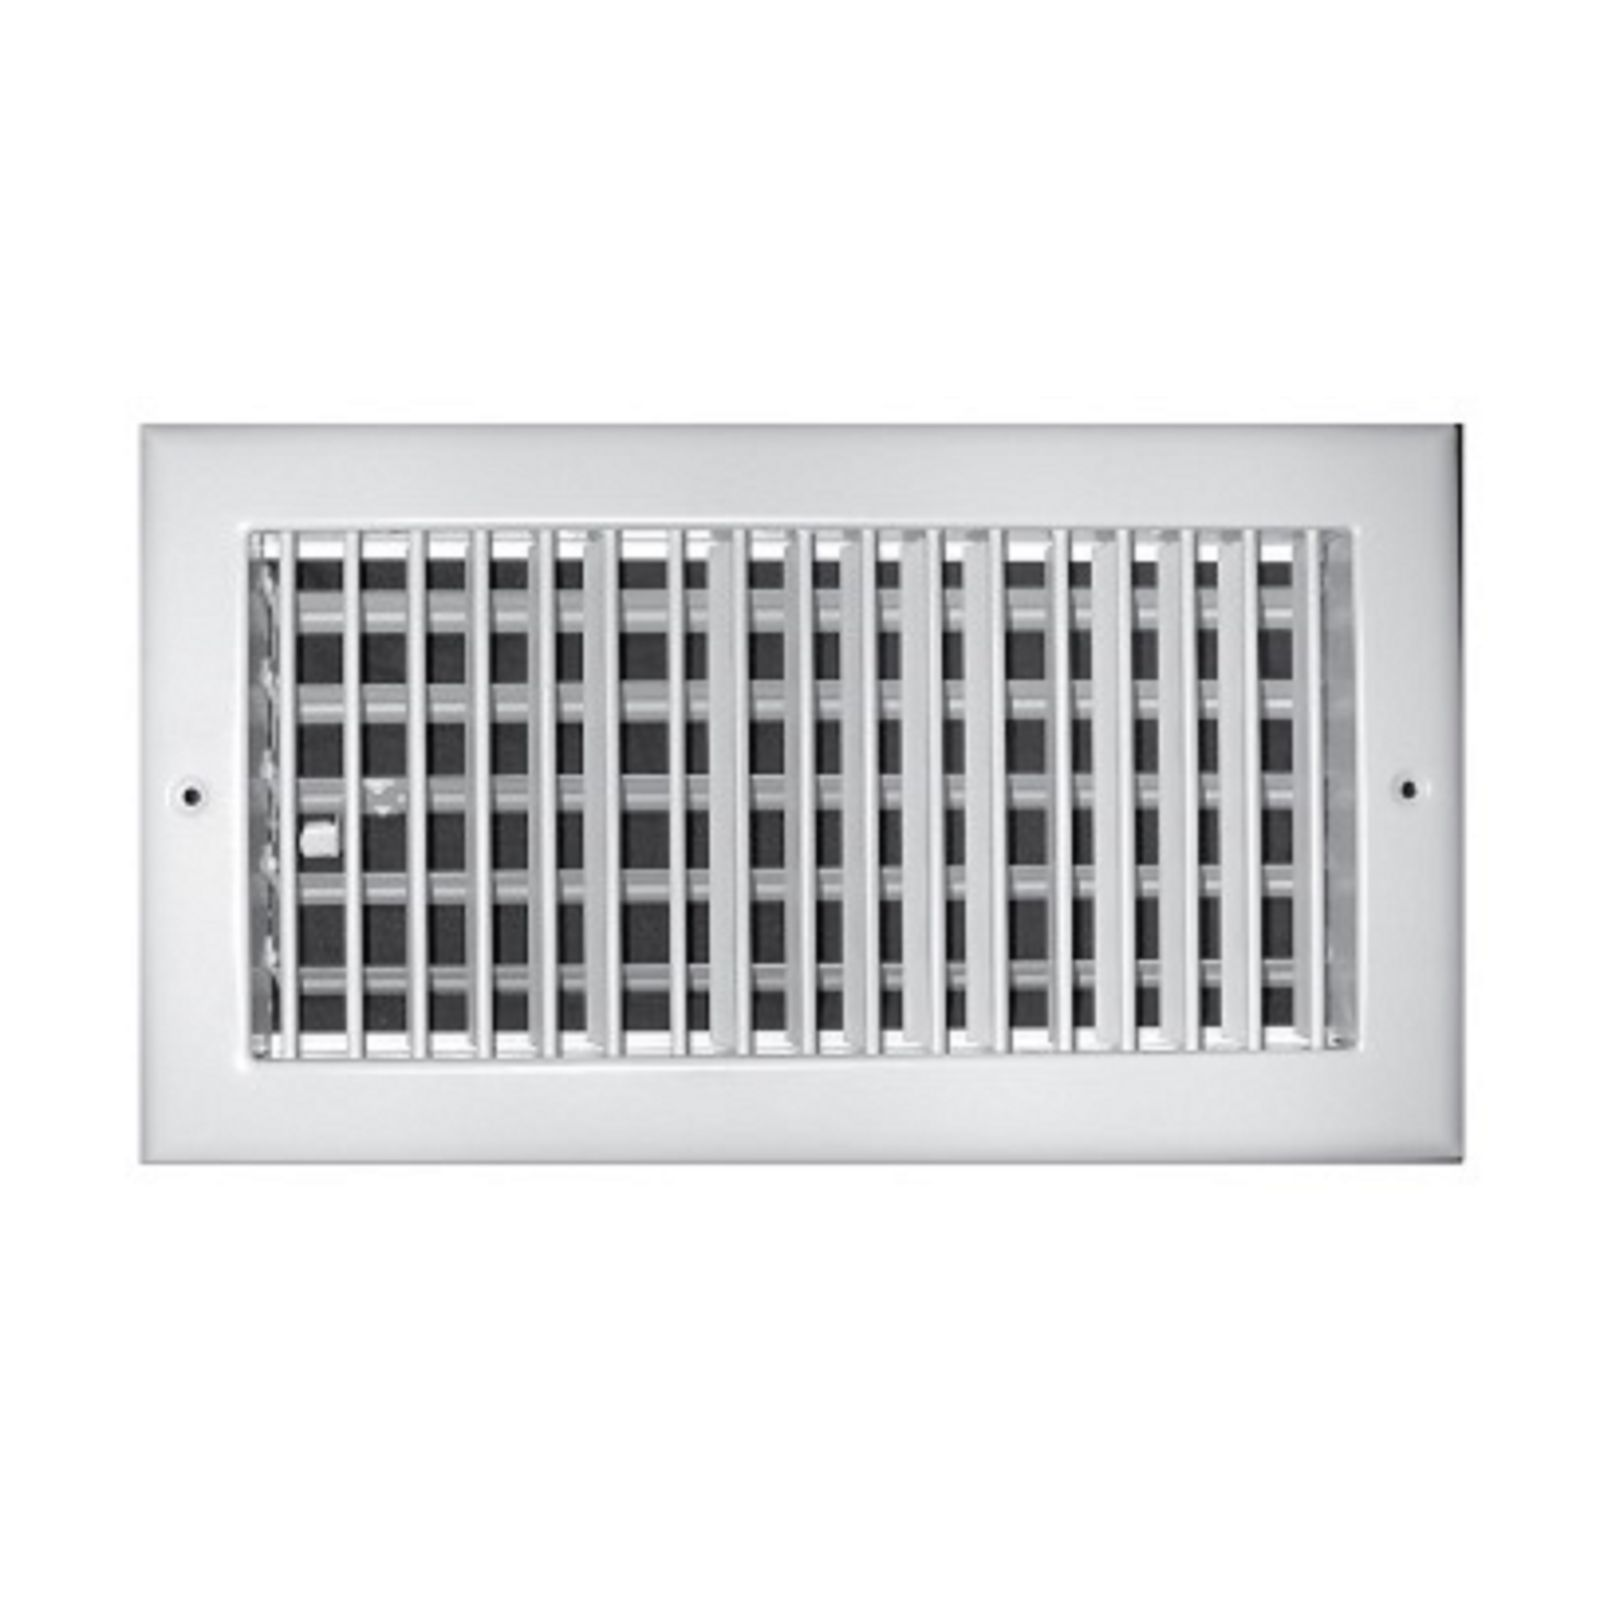 "TRUaire A210VM 16X06 - Aluminum Adjustable 1-Way Wall/Ceiling Register, Vertical, Multi Shutter Damper, White, 16"" X 06"""